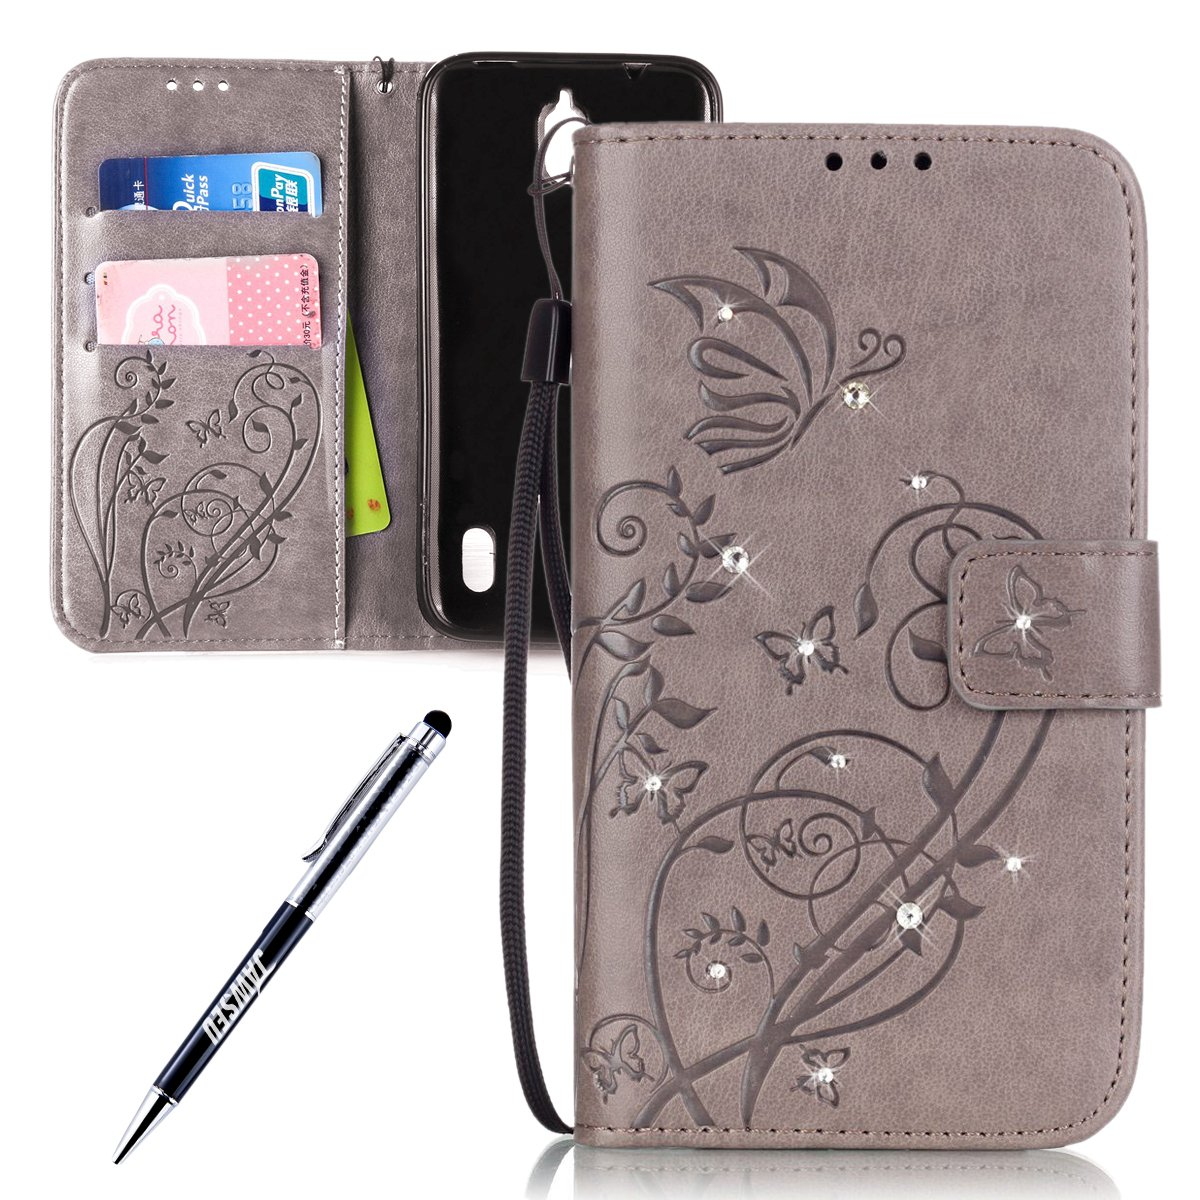 Huawei Y625 Custodia, Huawei Ascend Y625 Cover, Huawei Ascend Y 625 Custodia Pelle Portafoglio, JAWSEU [Shock-Absorption][Anti Scratch] Lusso 3D Goffratura Fiore Farfalla Wallet Leather Flip Cover Custodia per Huawei Y625 Protectiva Bumper Copertura con Mo